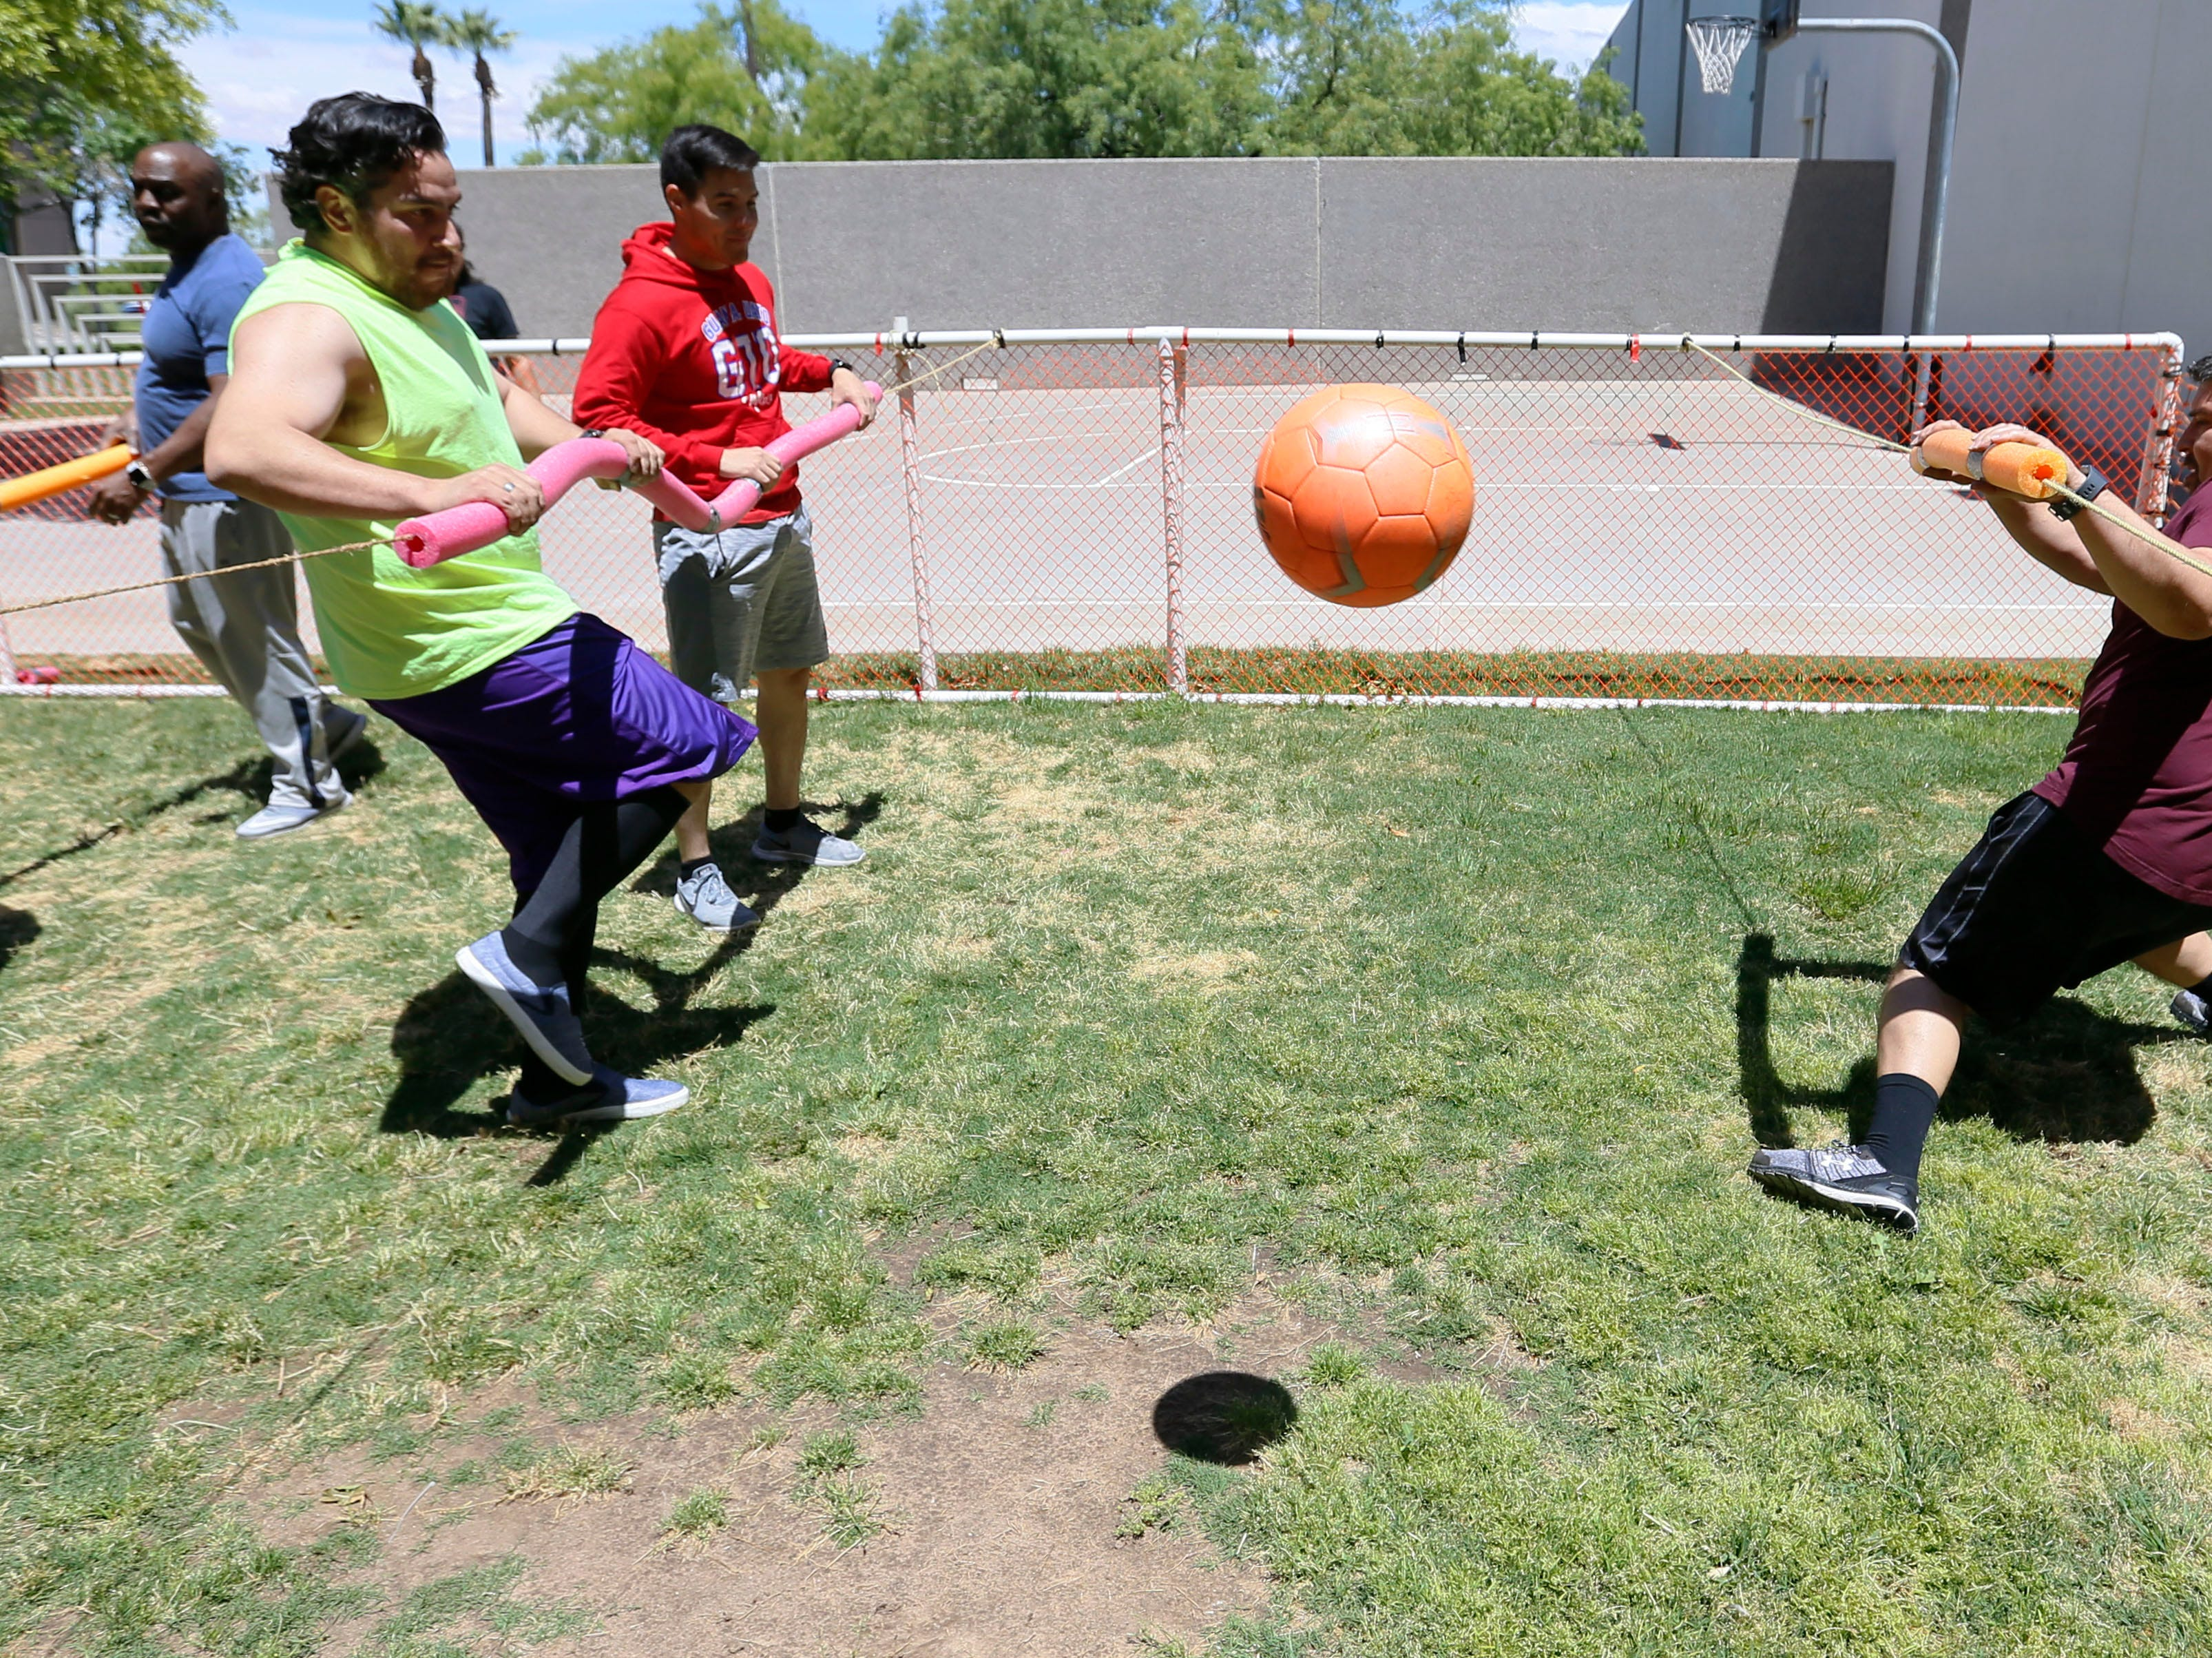 Helen of Troy trade management analyst Larry Dominguez attempts to guard the goal against senior tax accounting Jesus Villarreal, left, and tax staff accountant Roberto Valverde, right, during human foosball tournament Monday, May 13, at Helen of Troy. The tournament benefited Junior Achievement of El Paso. Participating associates paid a $10 participation fee per player. Proceeds go towards Junior Achievement's Bowl-A-Thon.